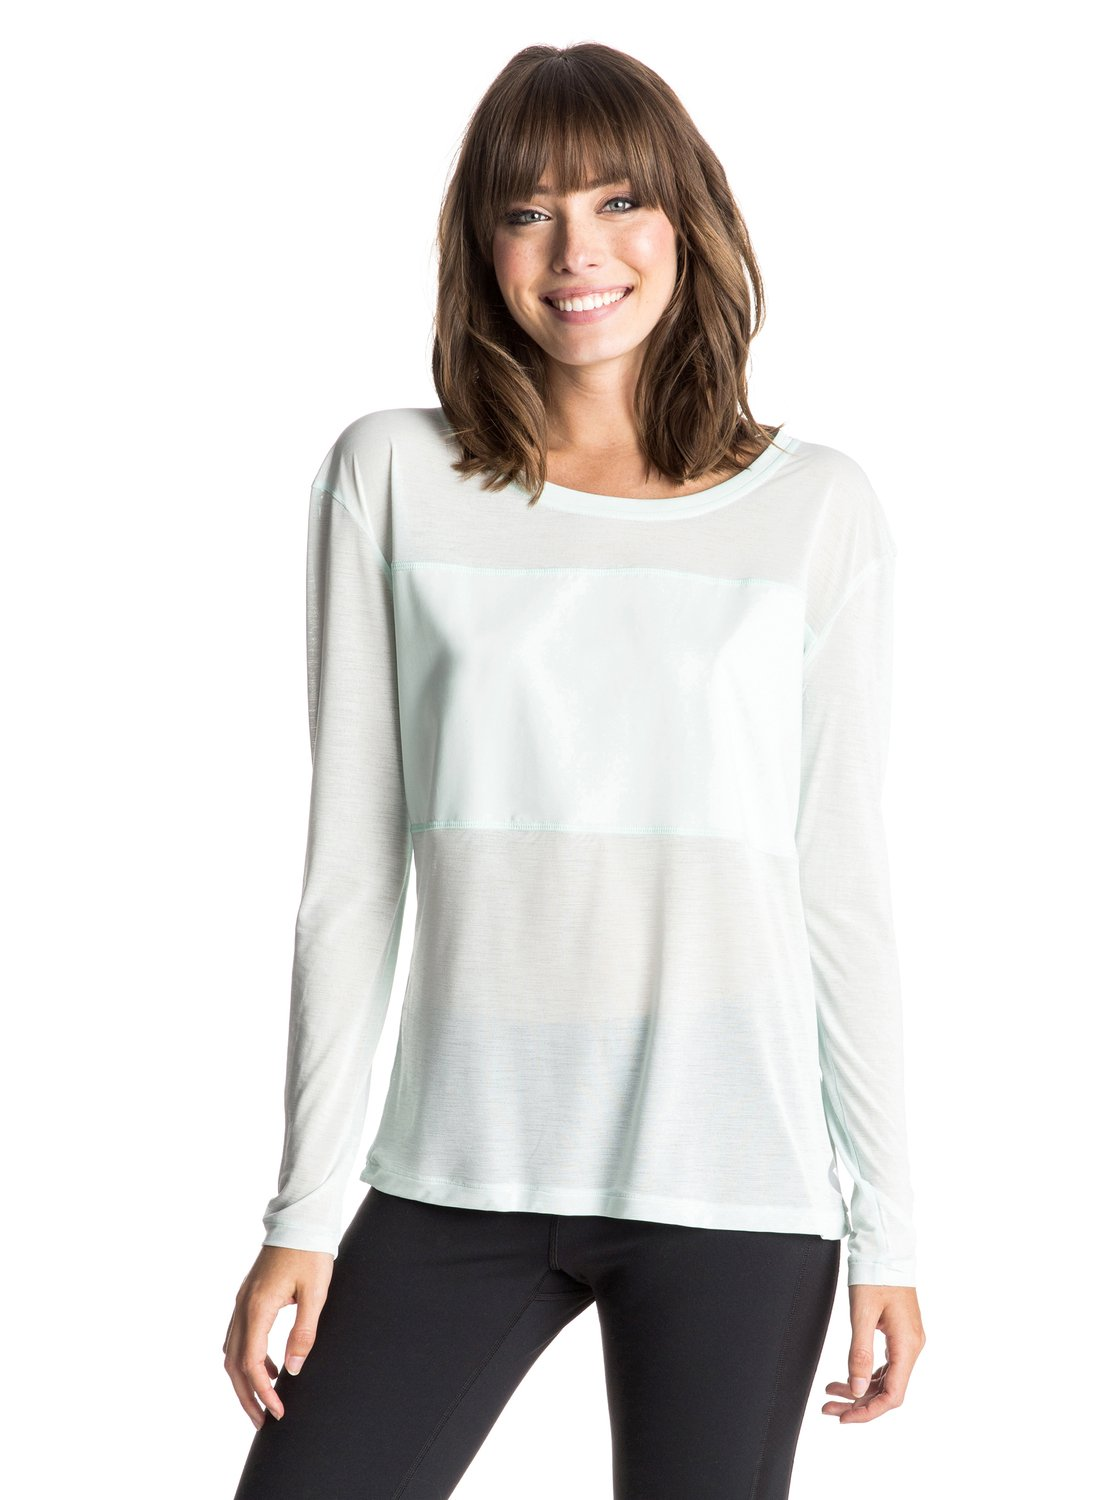 Women's Devotee Long Sleeve Top